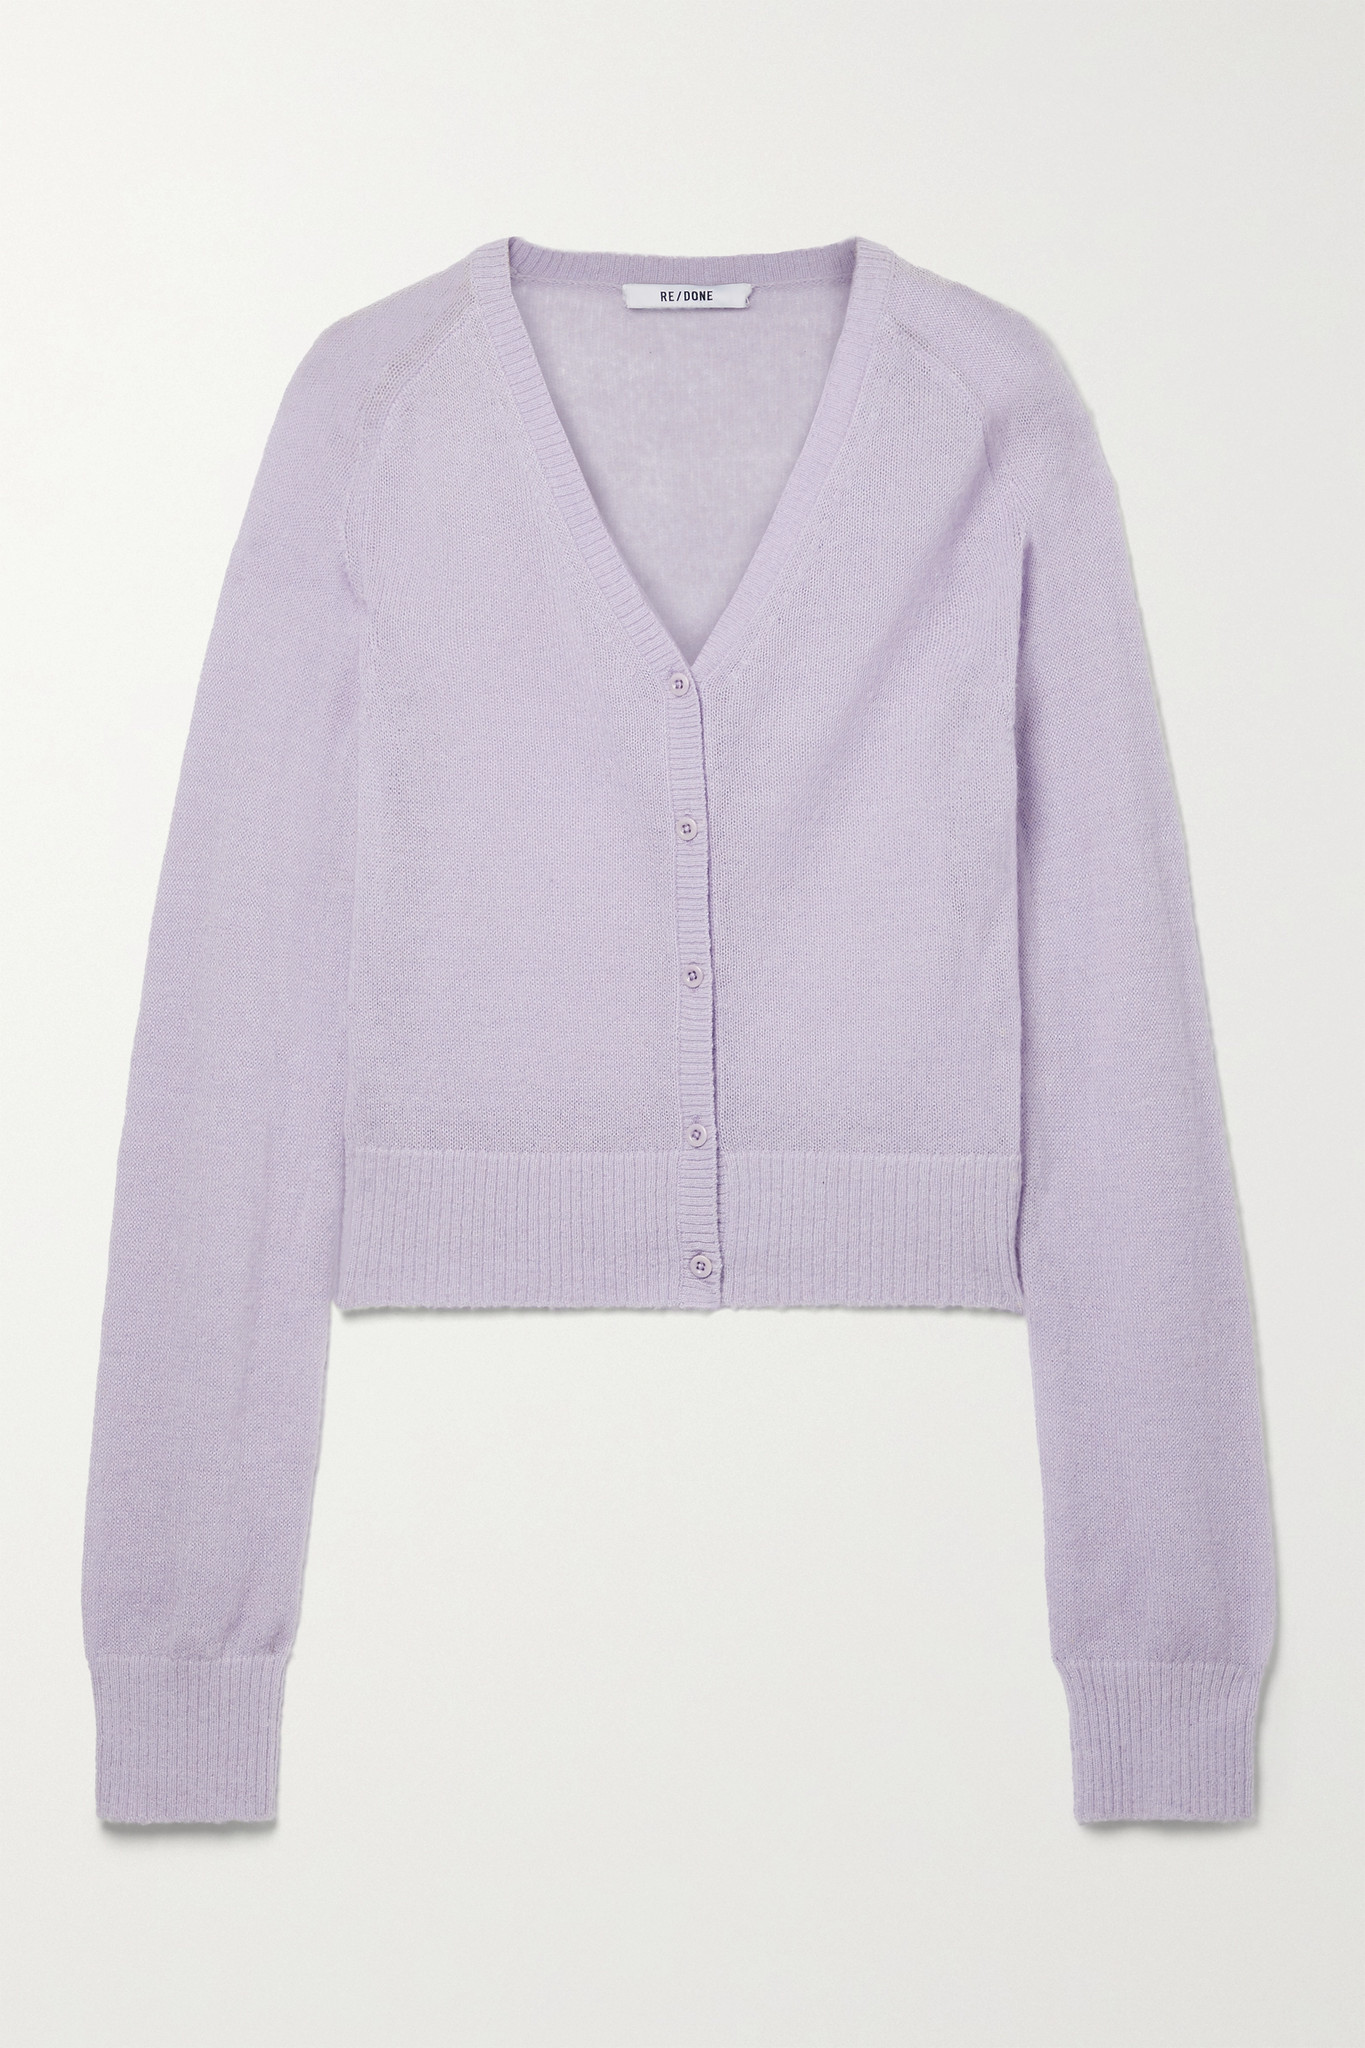 RE/DONE - 60s Knitted Cardigan - Purple - small